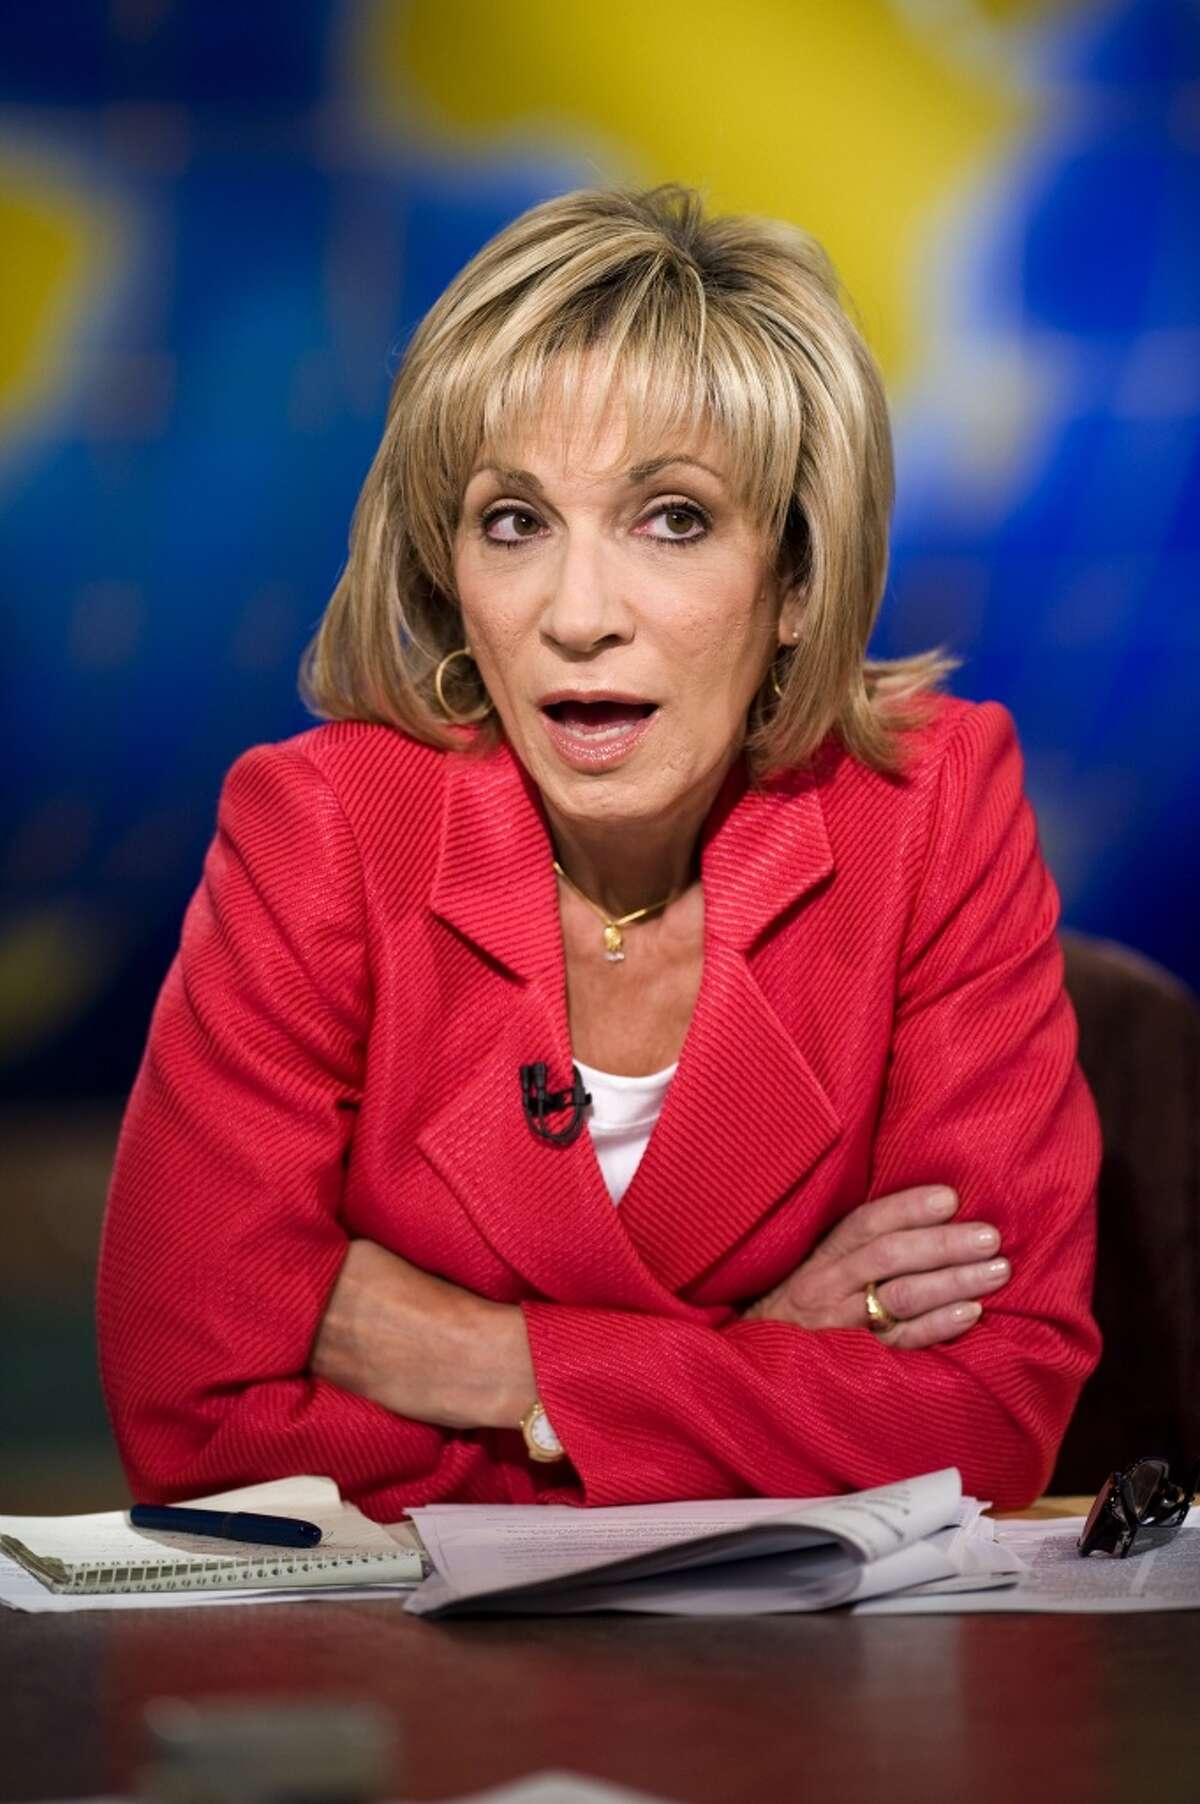 NBC's Andrea Mitchell: Climate change has become a talked about issue, after years in which TV networks have shown glacial indifference to the issue.